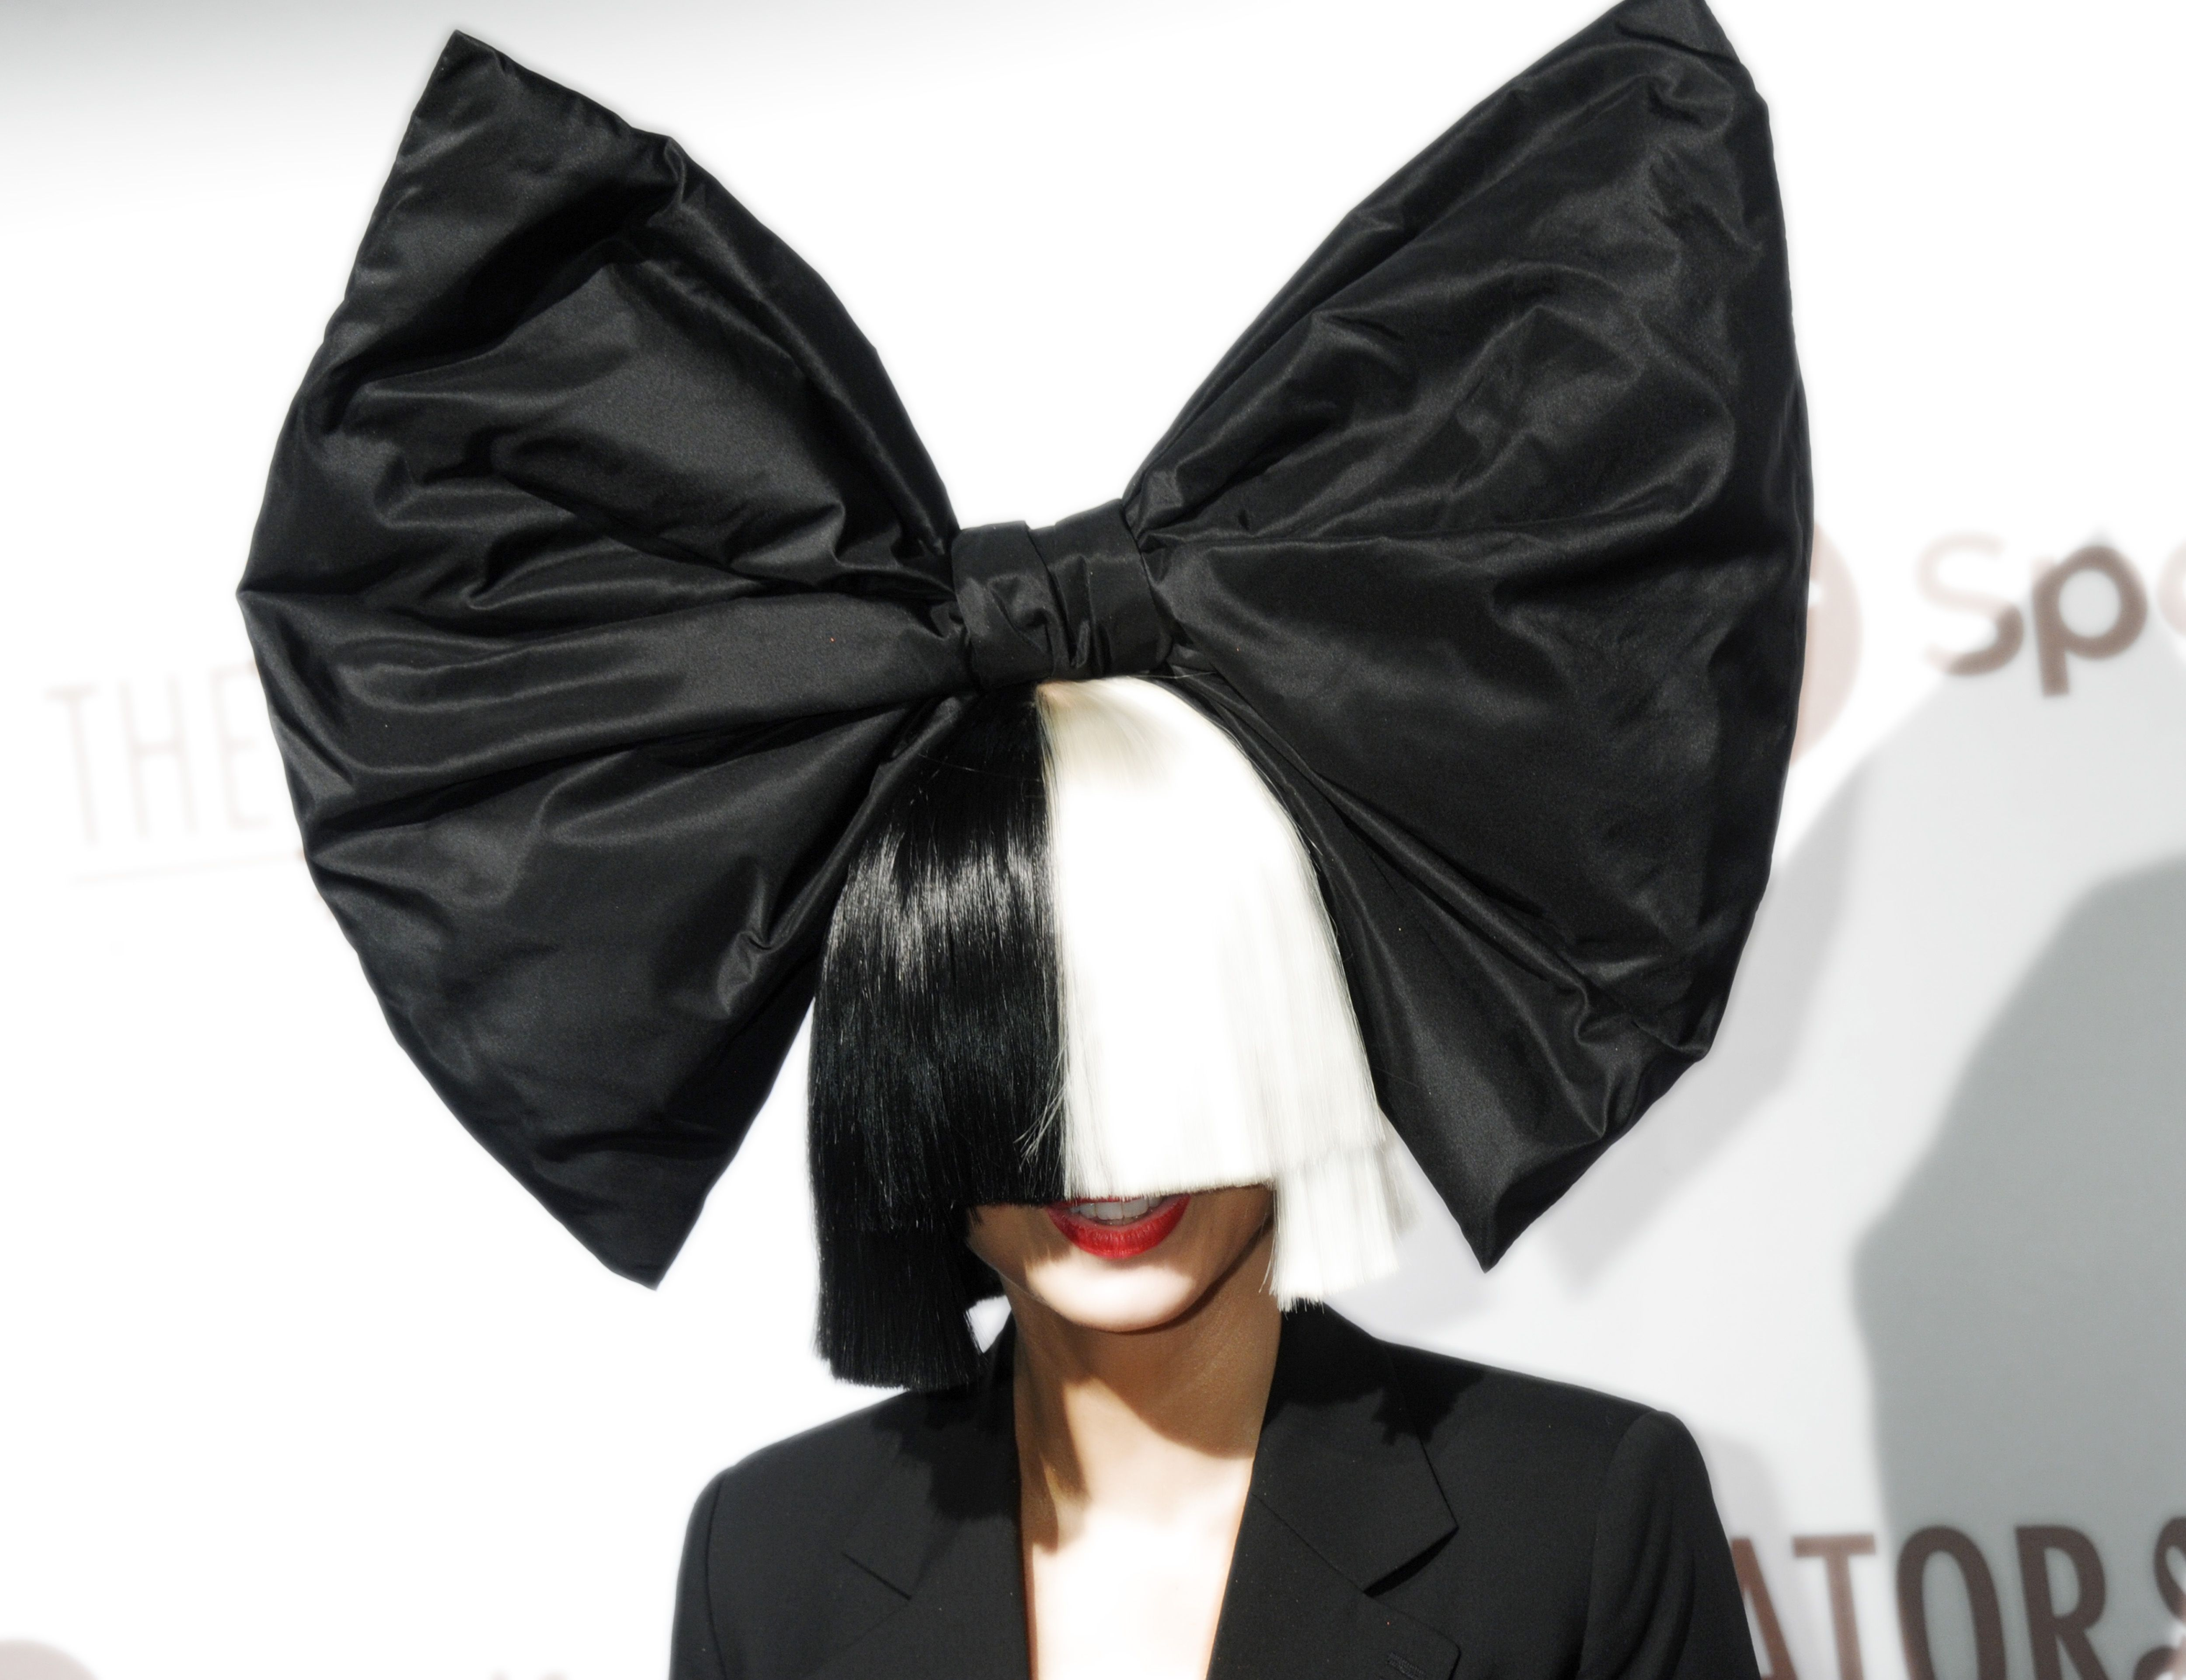 20 Epic Songs You Never Knew Were Written by Sia The